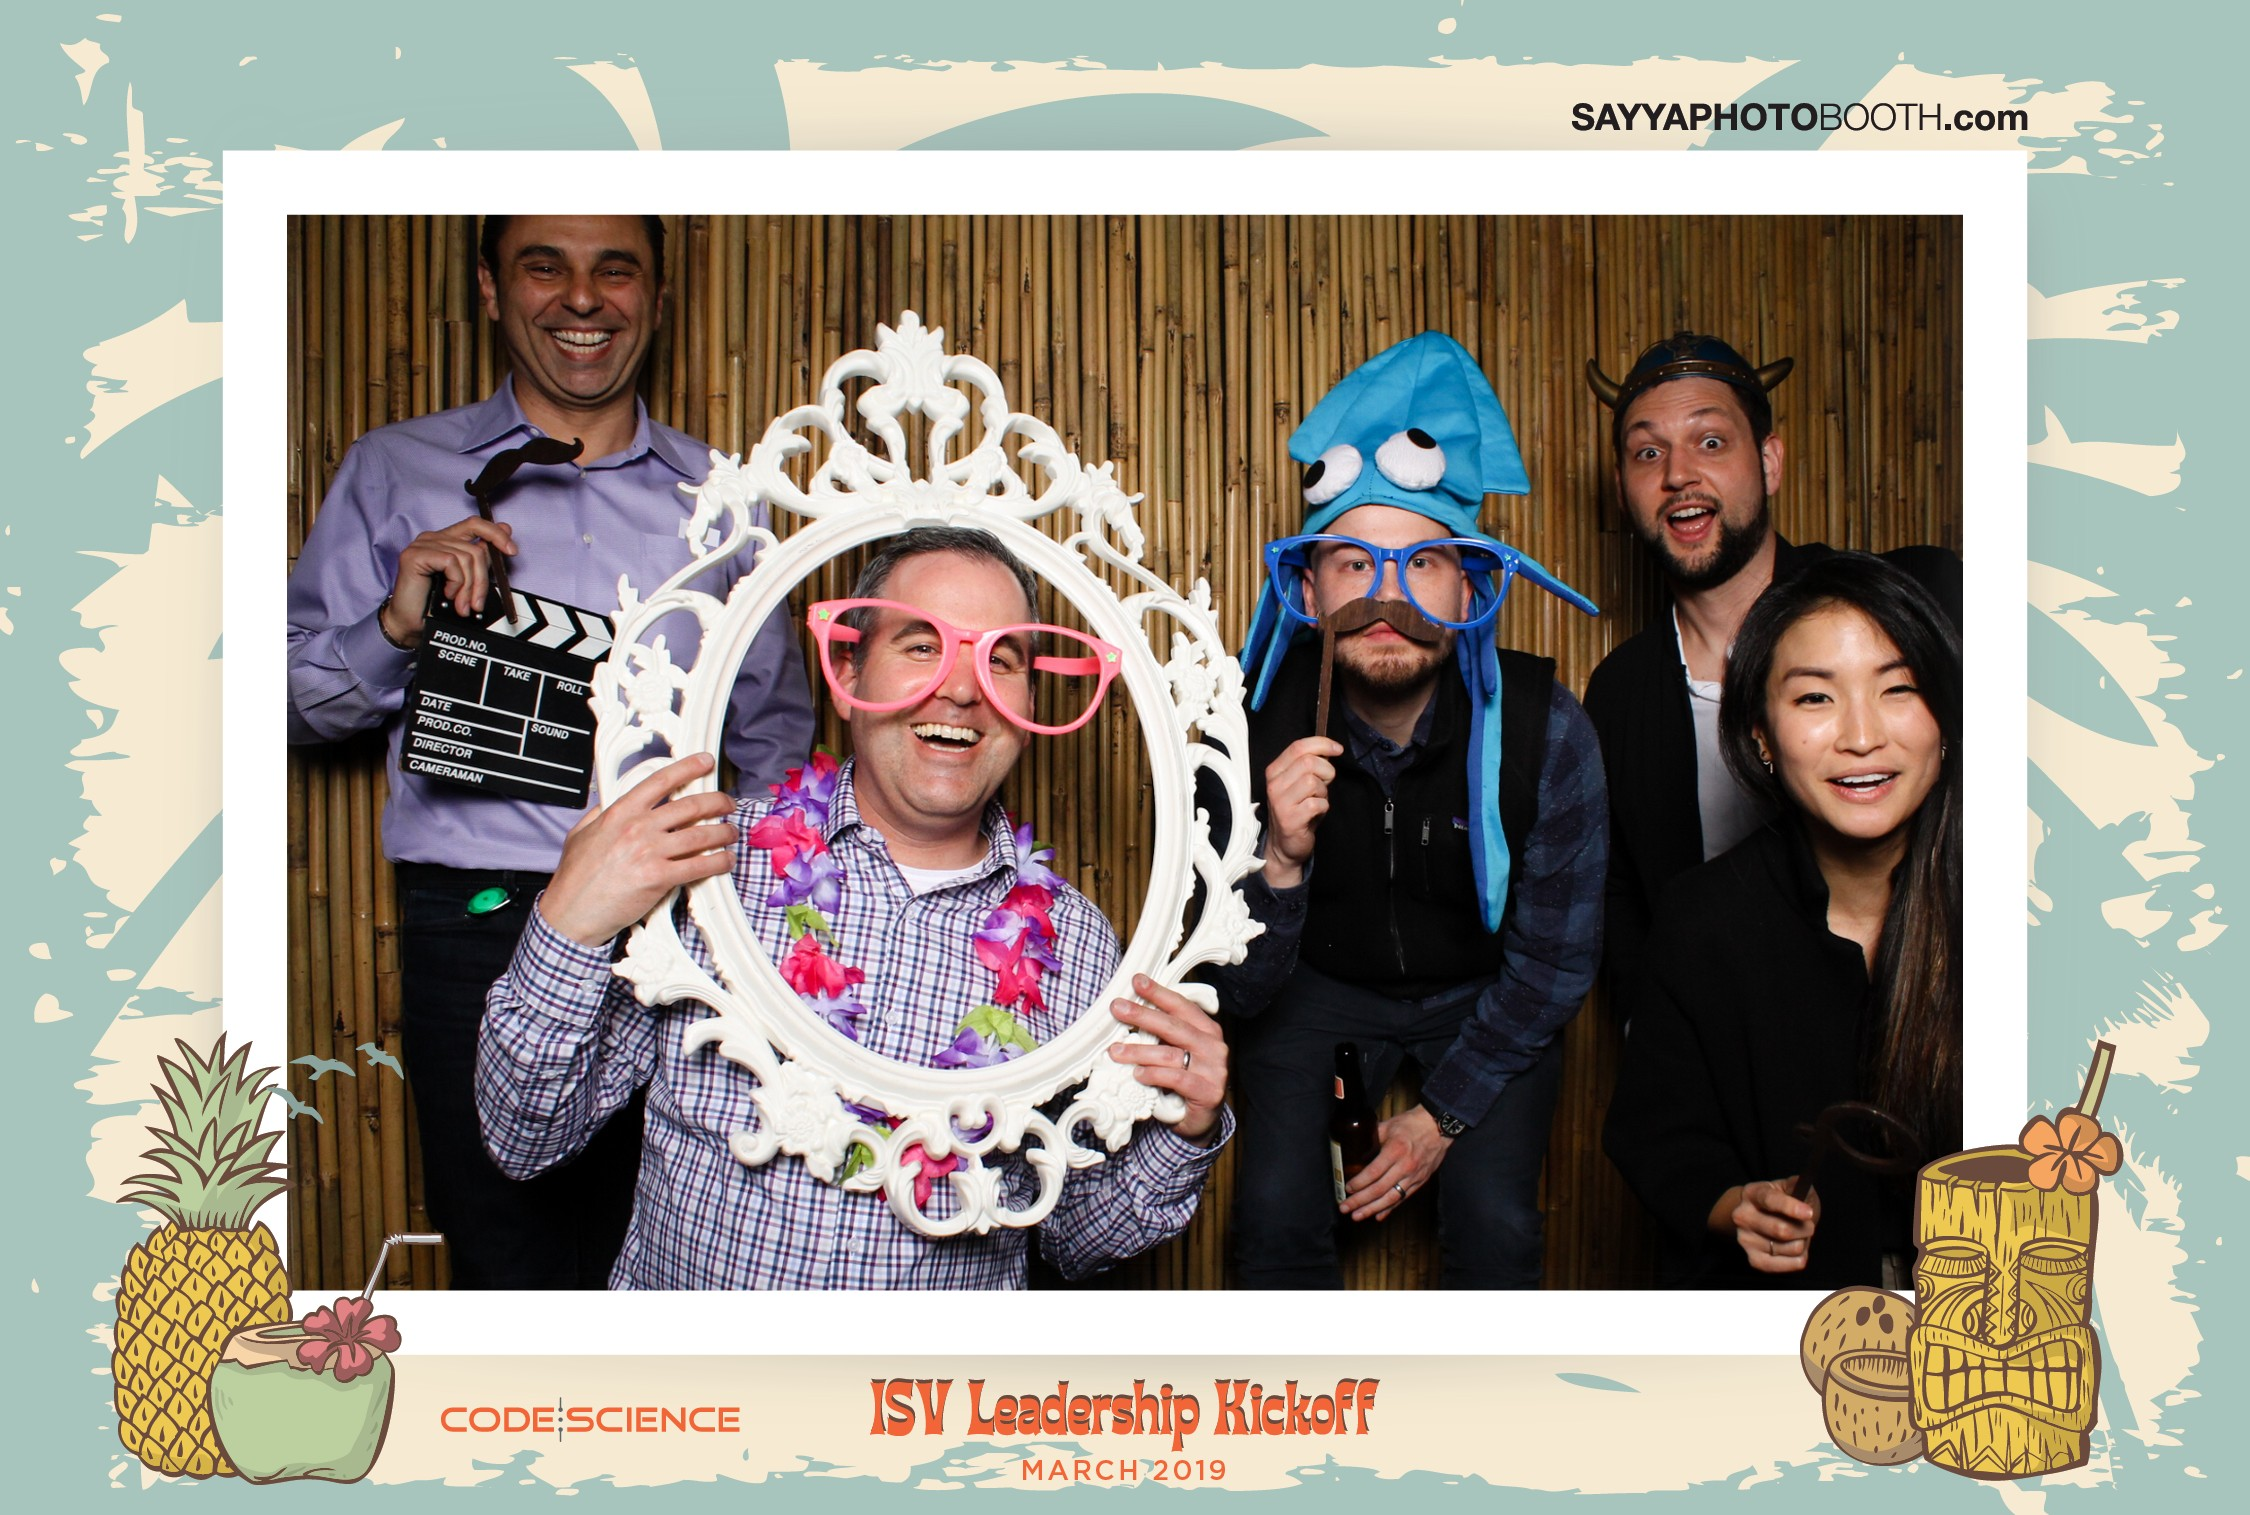 CodeScience ISV Team Kickoff